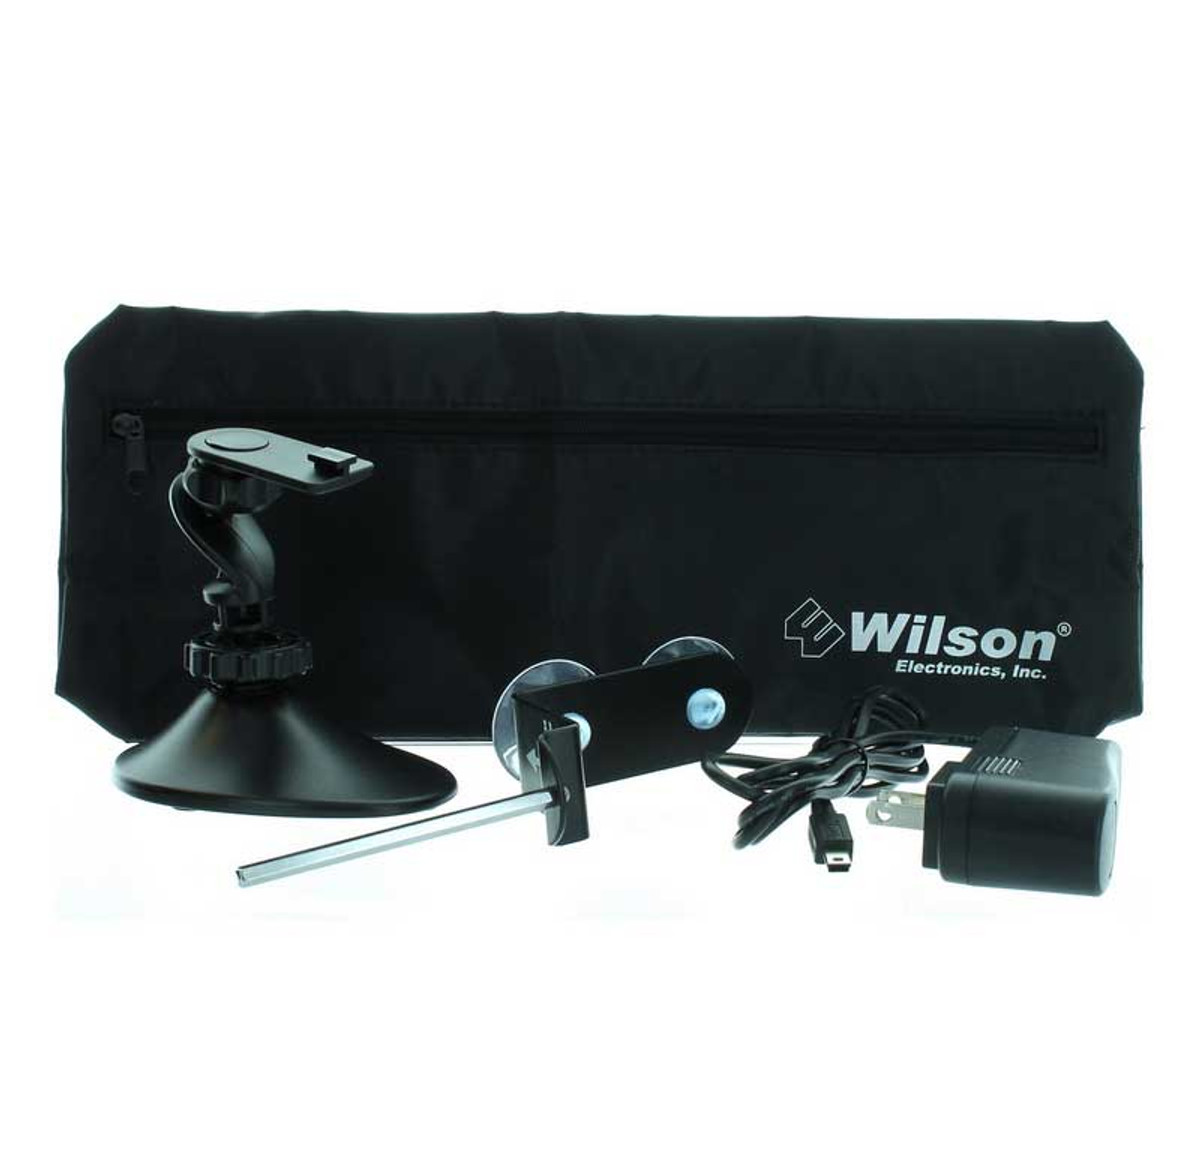 Wilson 859970 Home & Office Accessory Kit for use with Sleek amplifiers, detail image